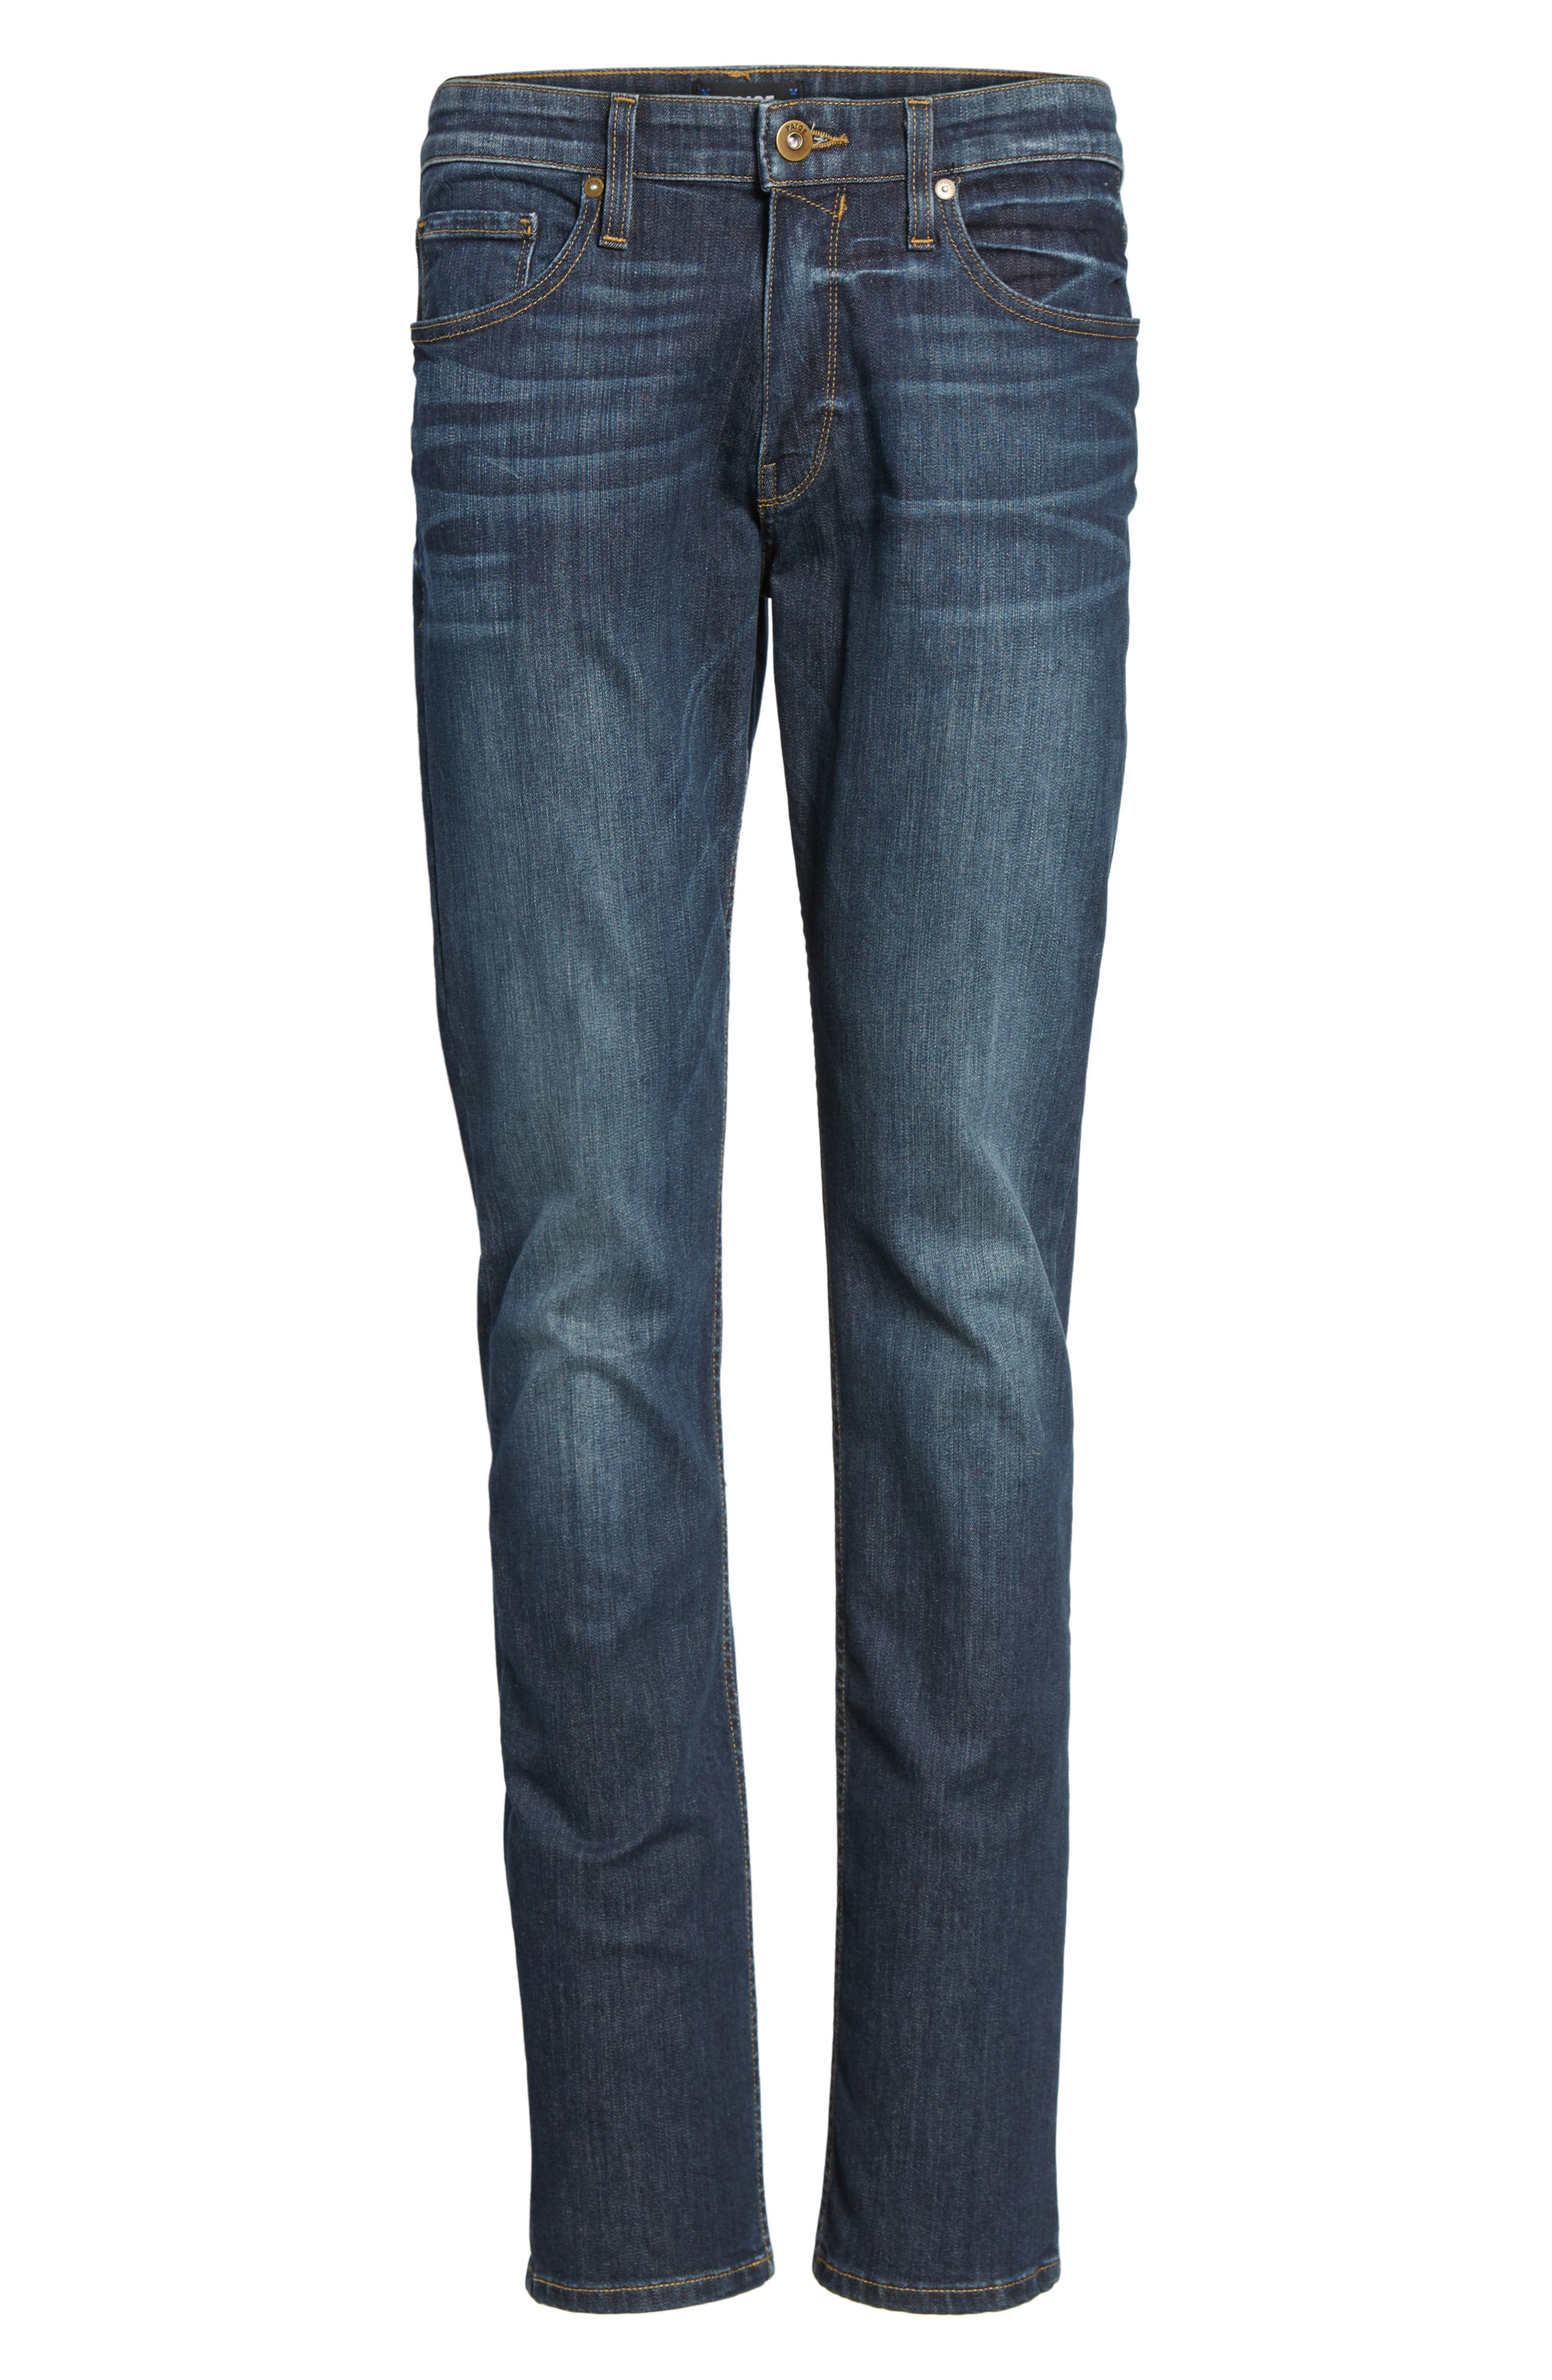 Legacy - Federal Slim Straight Leg Jeans,                             Alternate thumbnail 6, color,                             JERRY